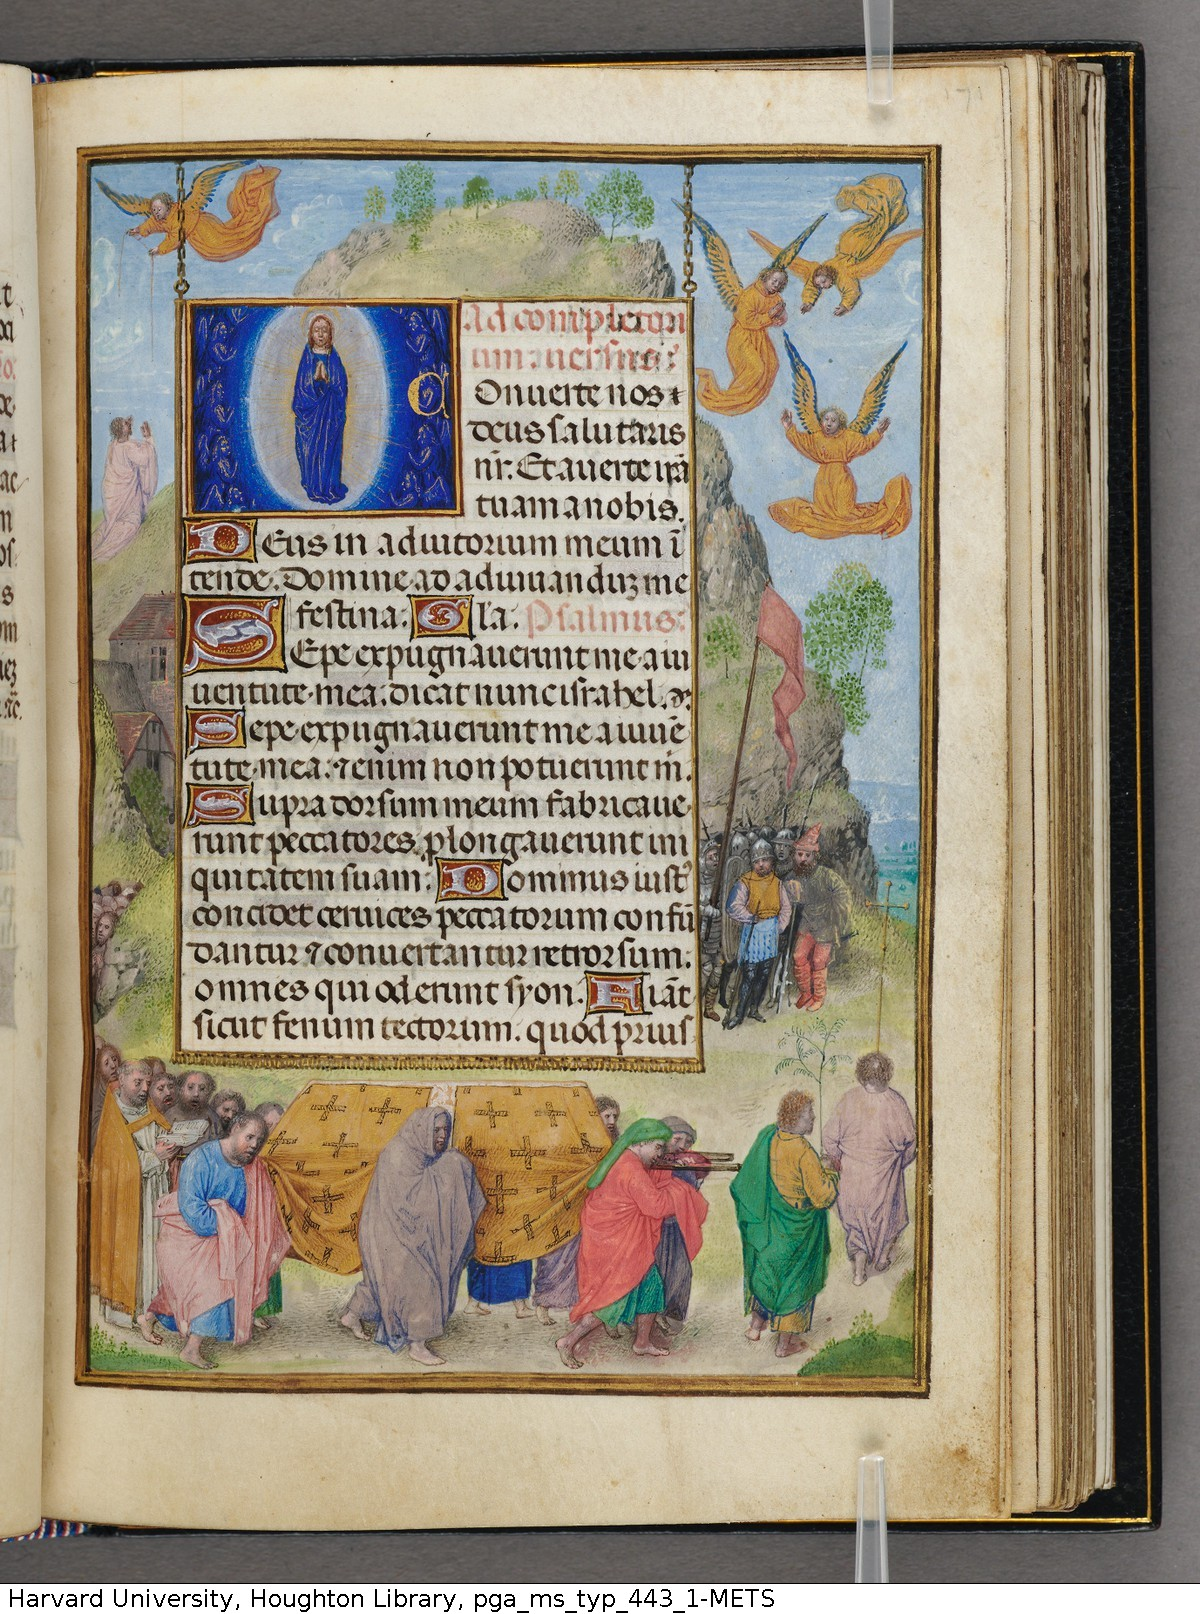 Emerson-White Hours use of Rome 1480 ca Harvard University, Houghton Library, MSS Typ 443.1 fol 171